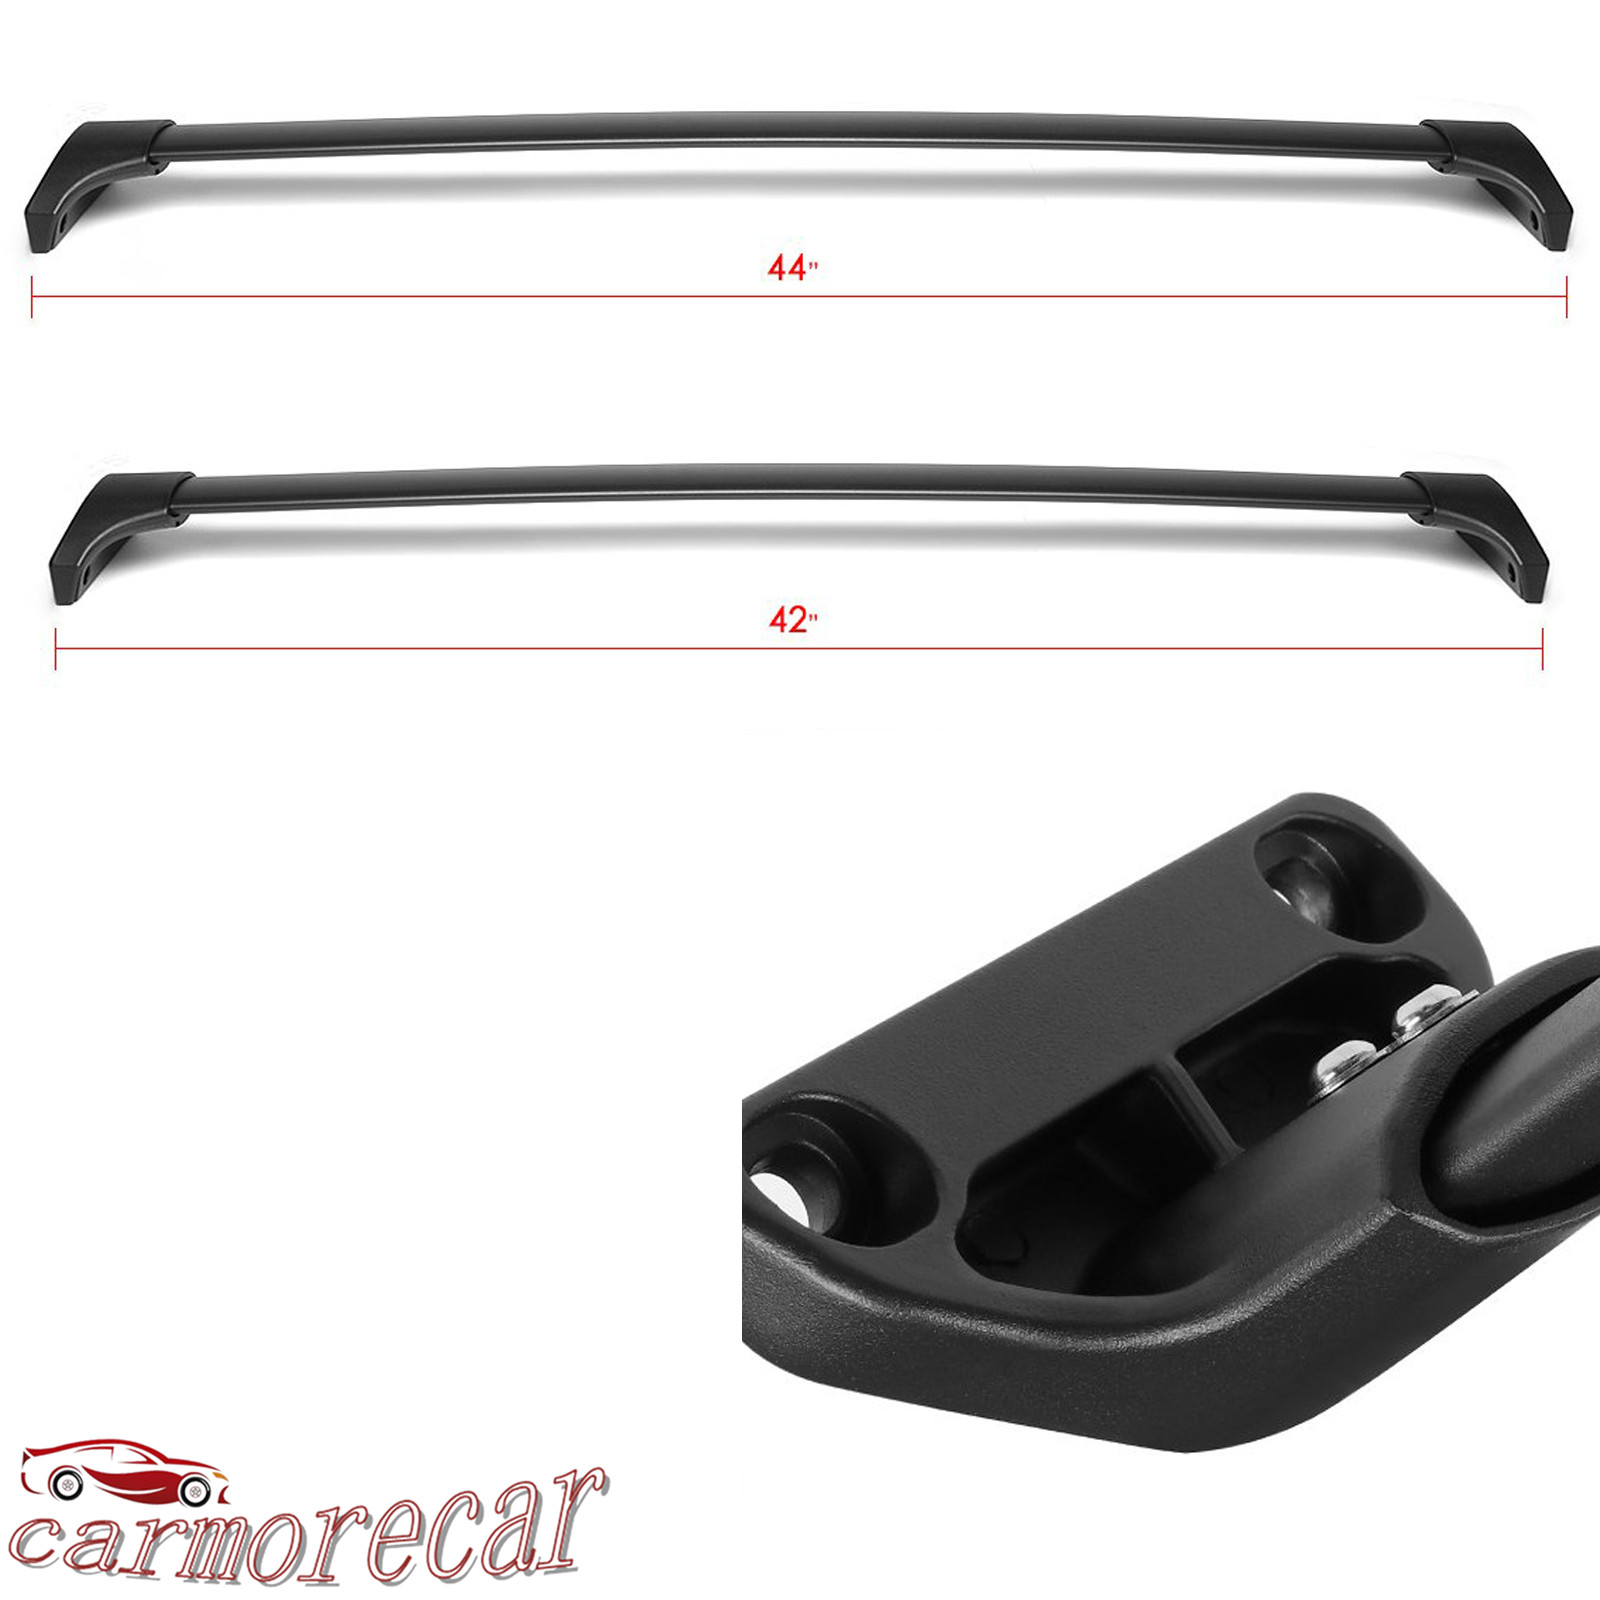 Set (2) Roof Rack Rail Cross Bar Luggage Carrier Crossbars